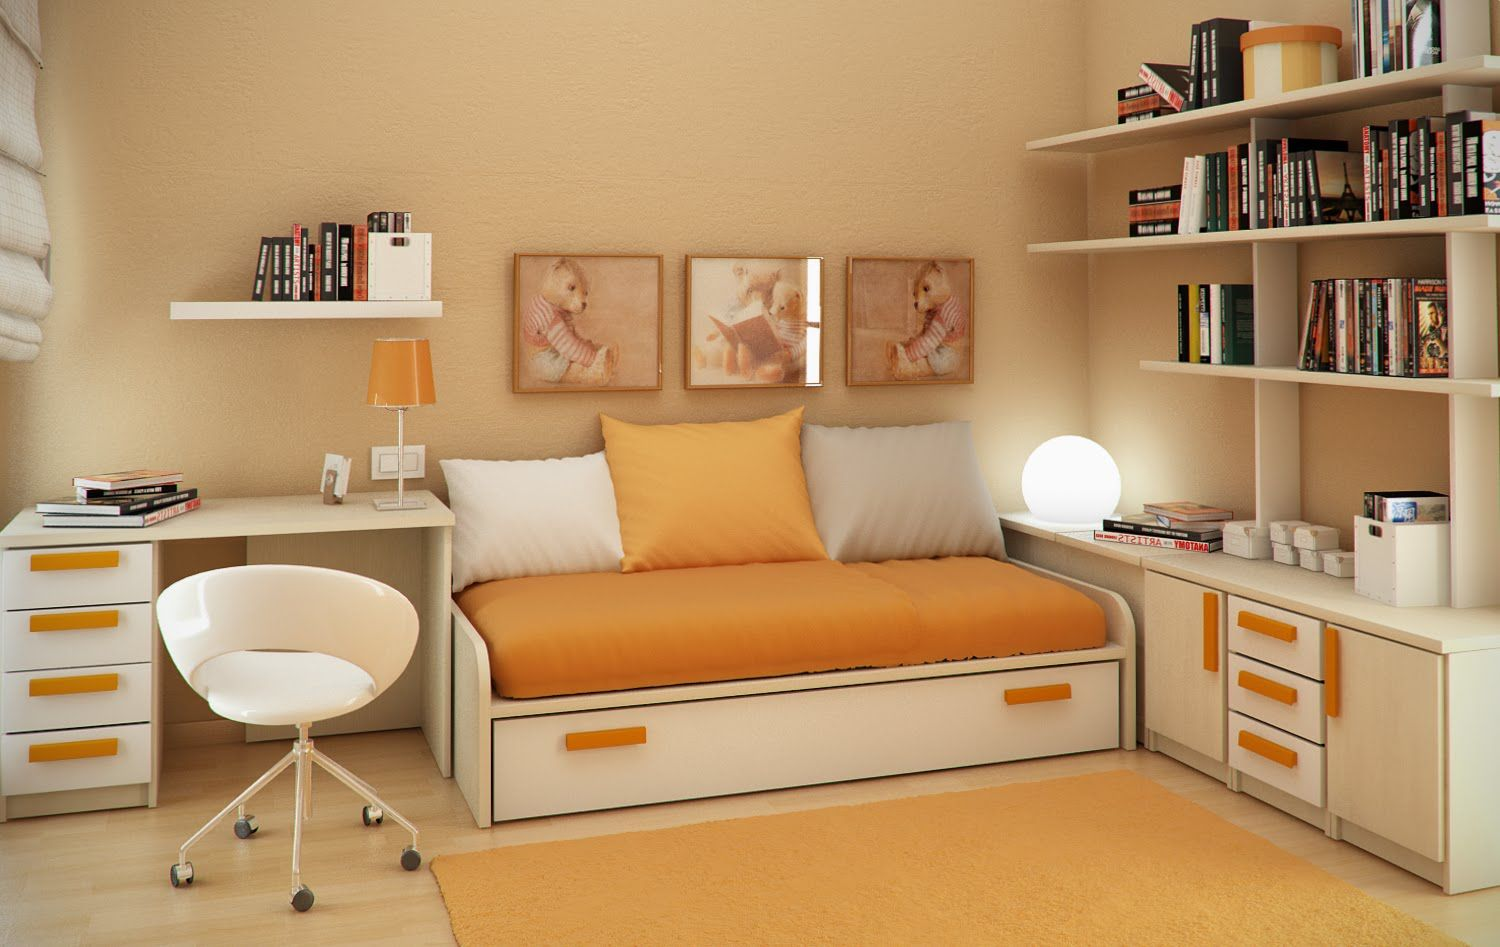 25 Cool Bed Ideas For Small Rooms Small Bedroom Decor Small